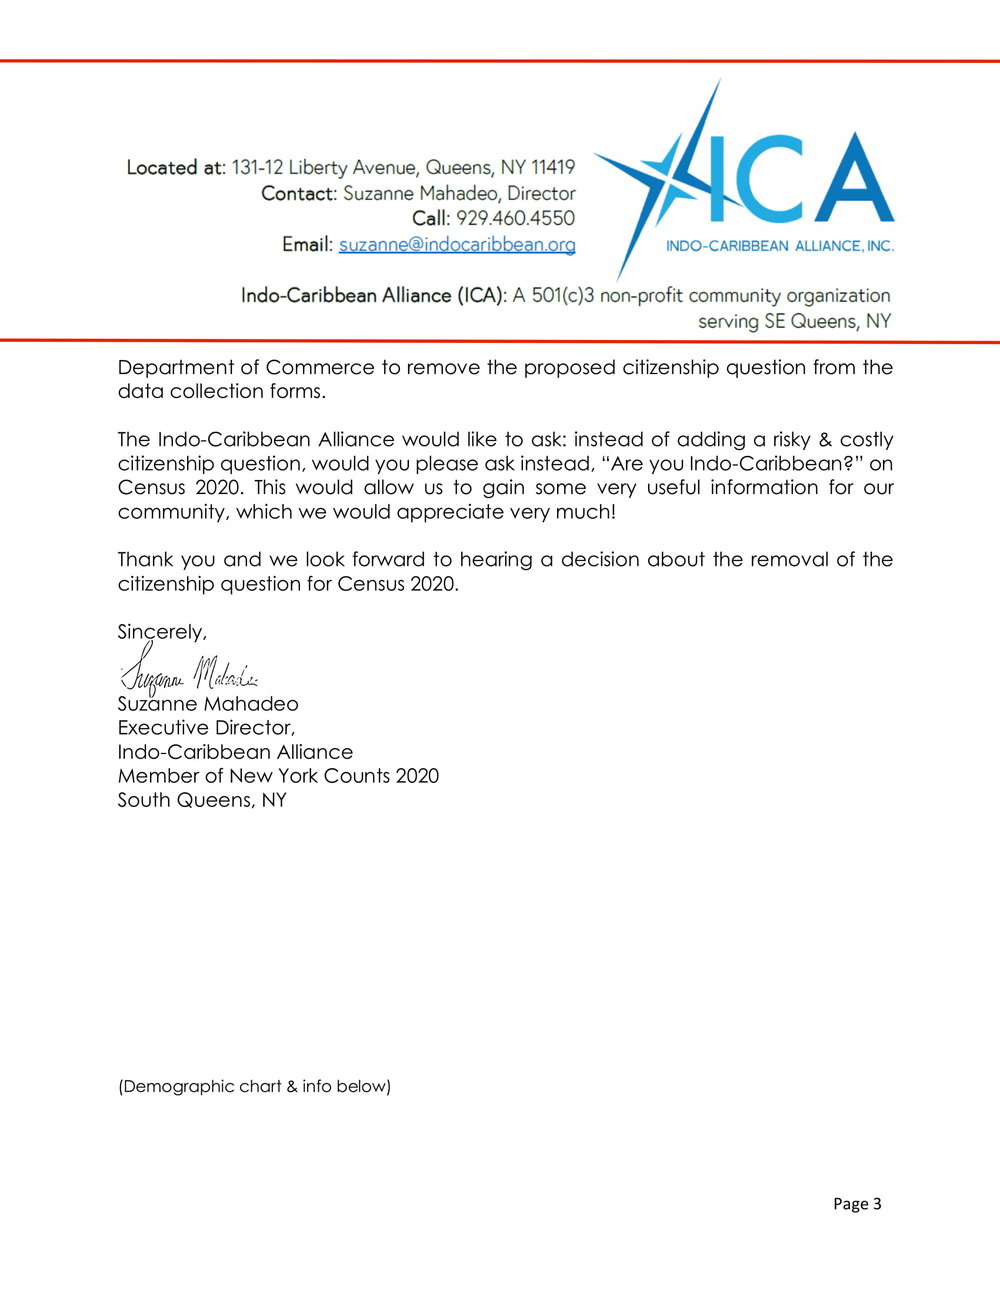 Indo-Caribbean Alliance (ICA) - Census 2020 Public Comments Letter-3.jpg